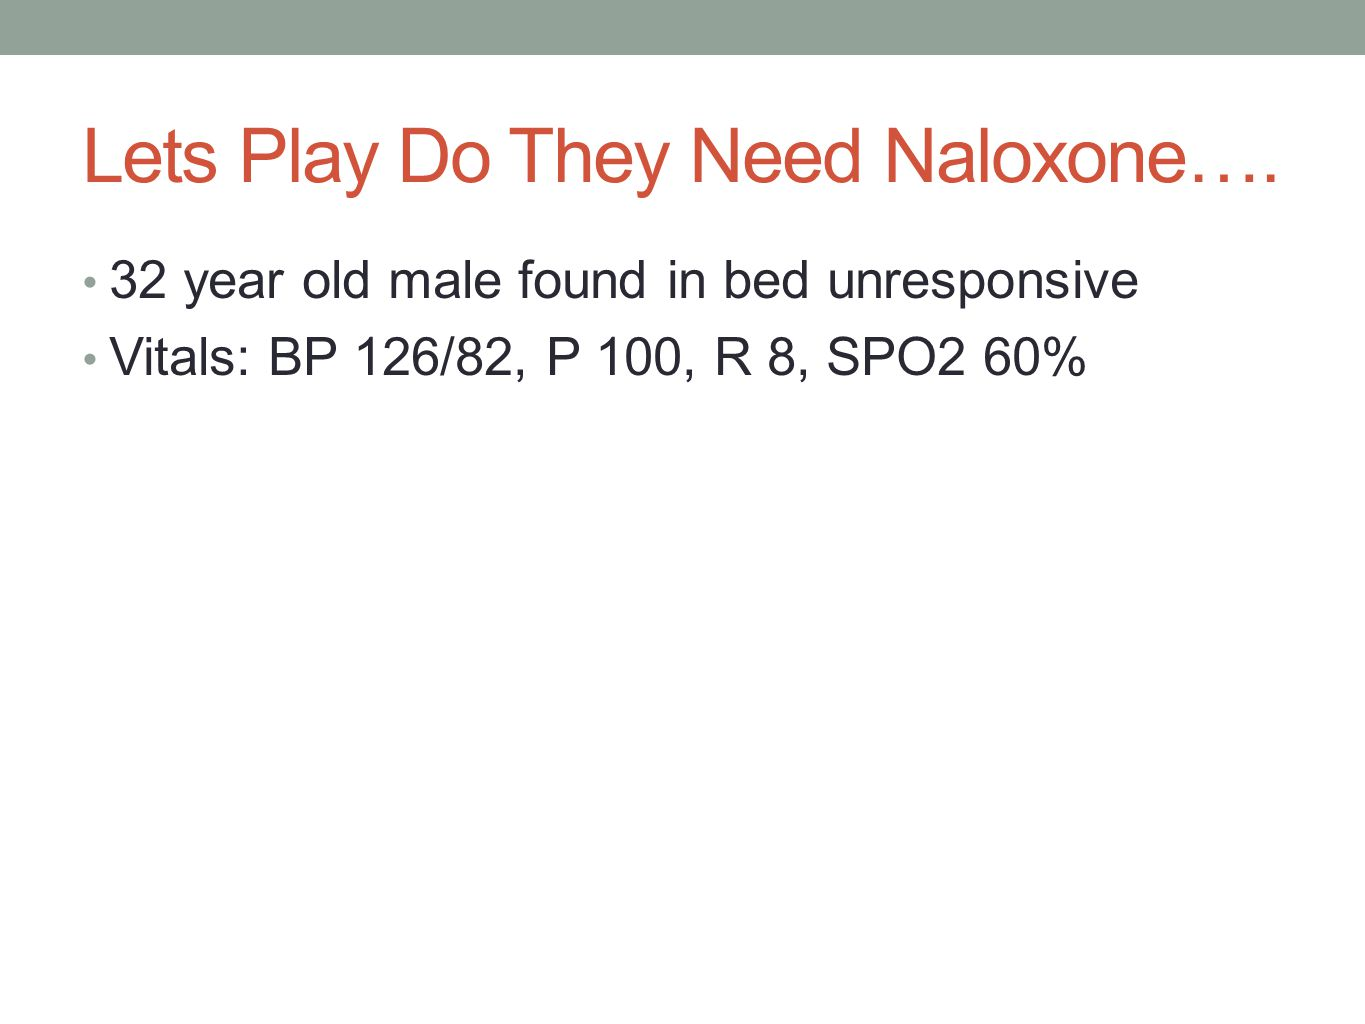 Lets Play Do They Need Naloxone…. 32 year old male found in bed unresponsive Vitals: BP 126/82, P 100, R 8, SPO2 60%